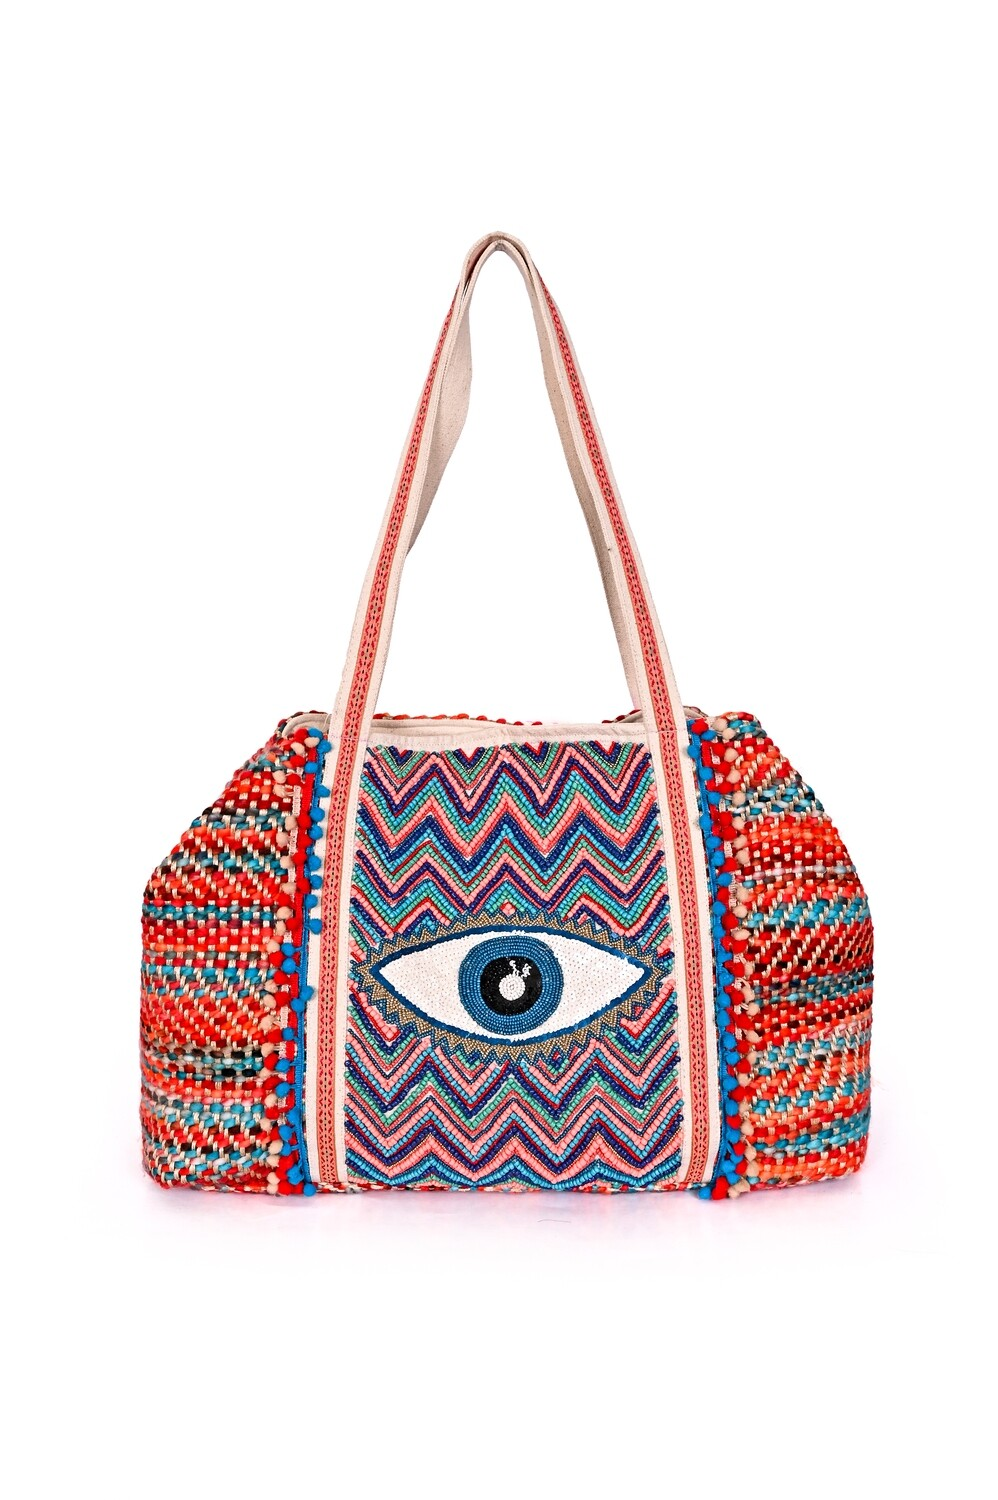 Boho Evil-Eye Tote Bag